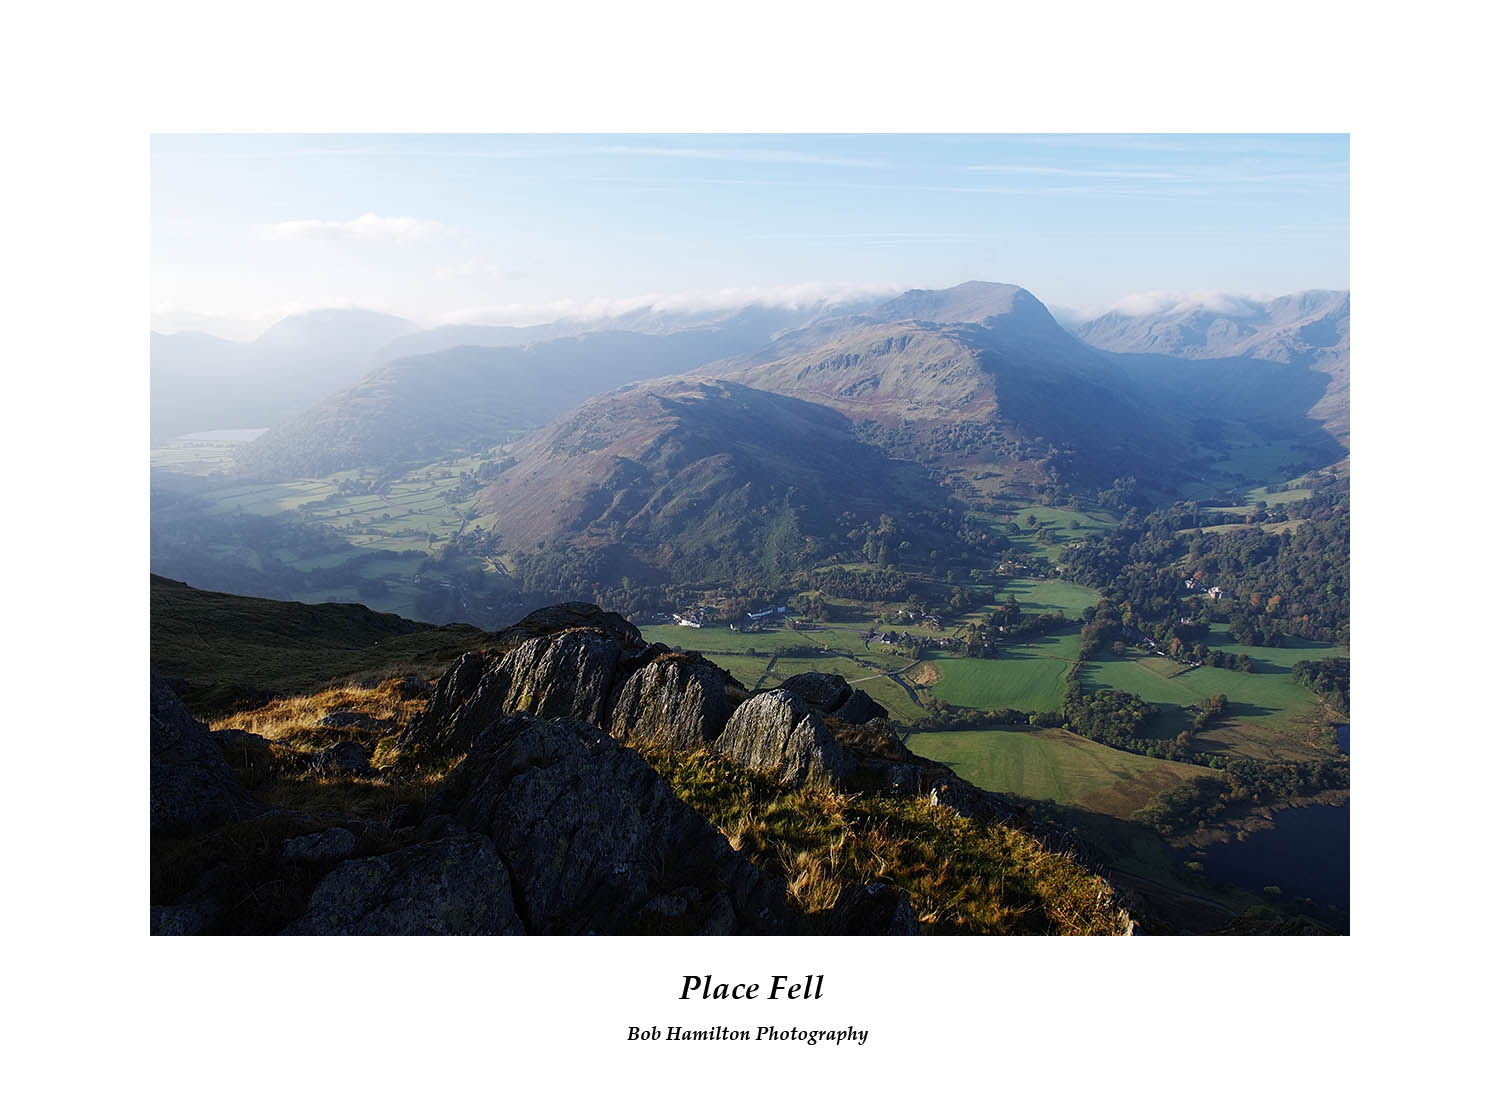 DSF1466 Brothers Water St Sunday Crag Grisedale and Patterdale from Place Fell